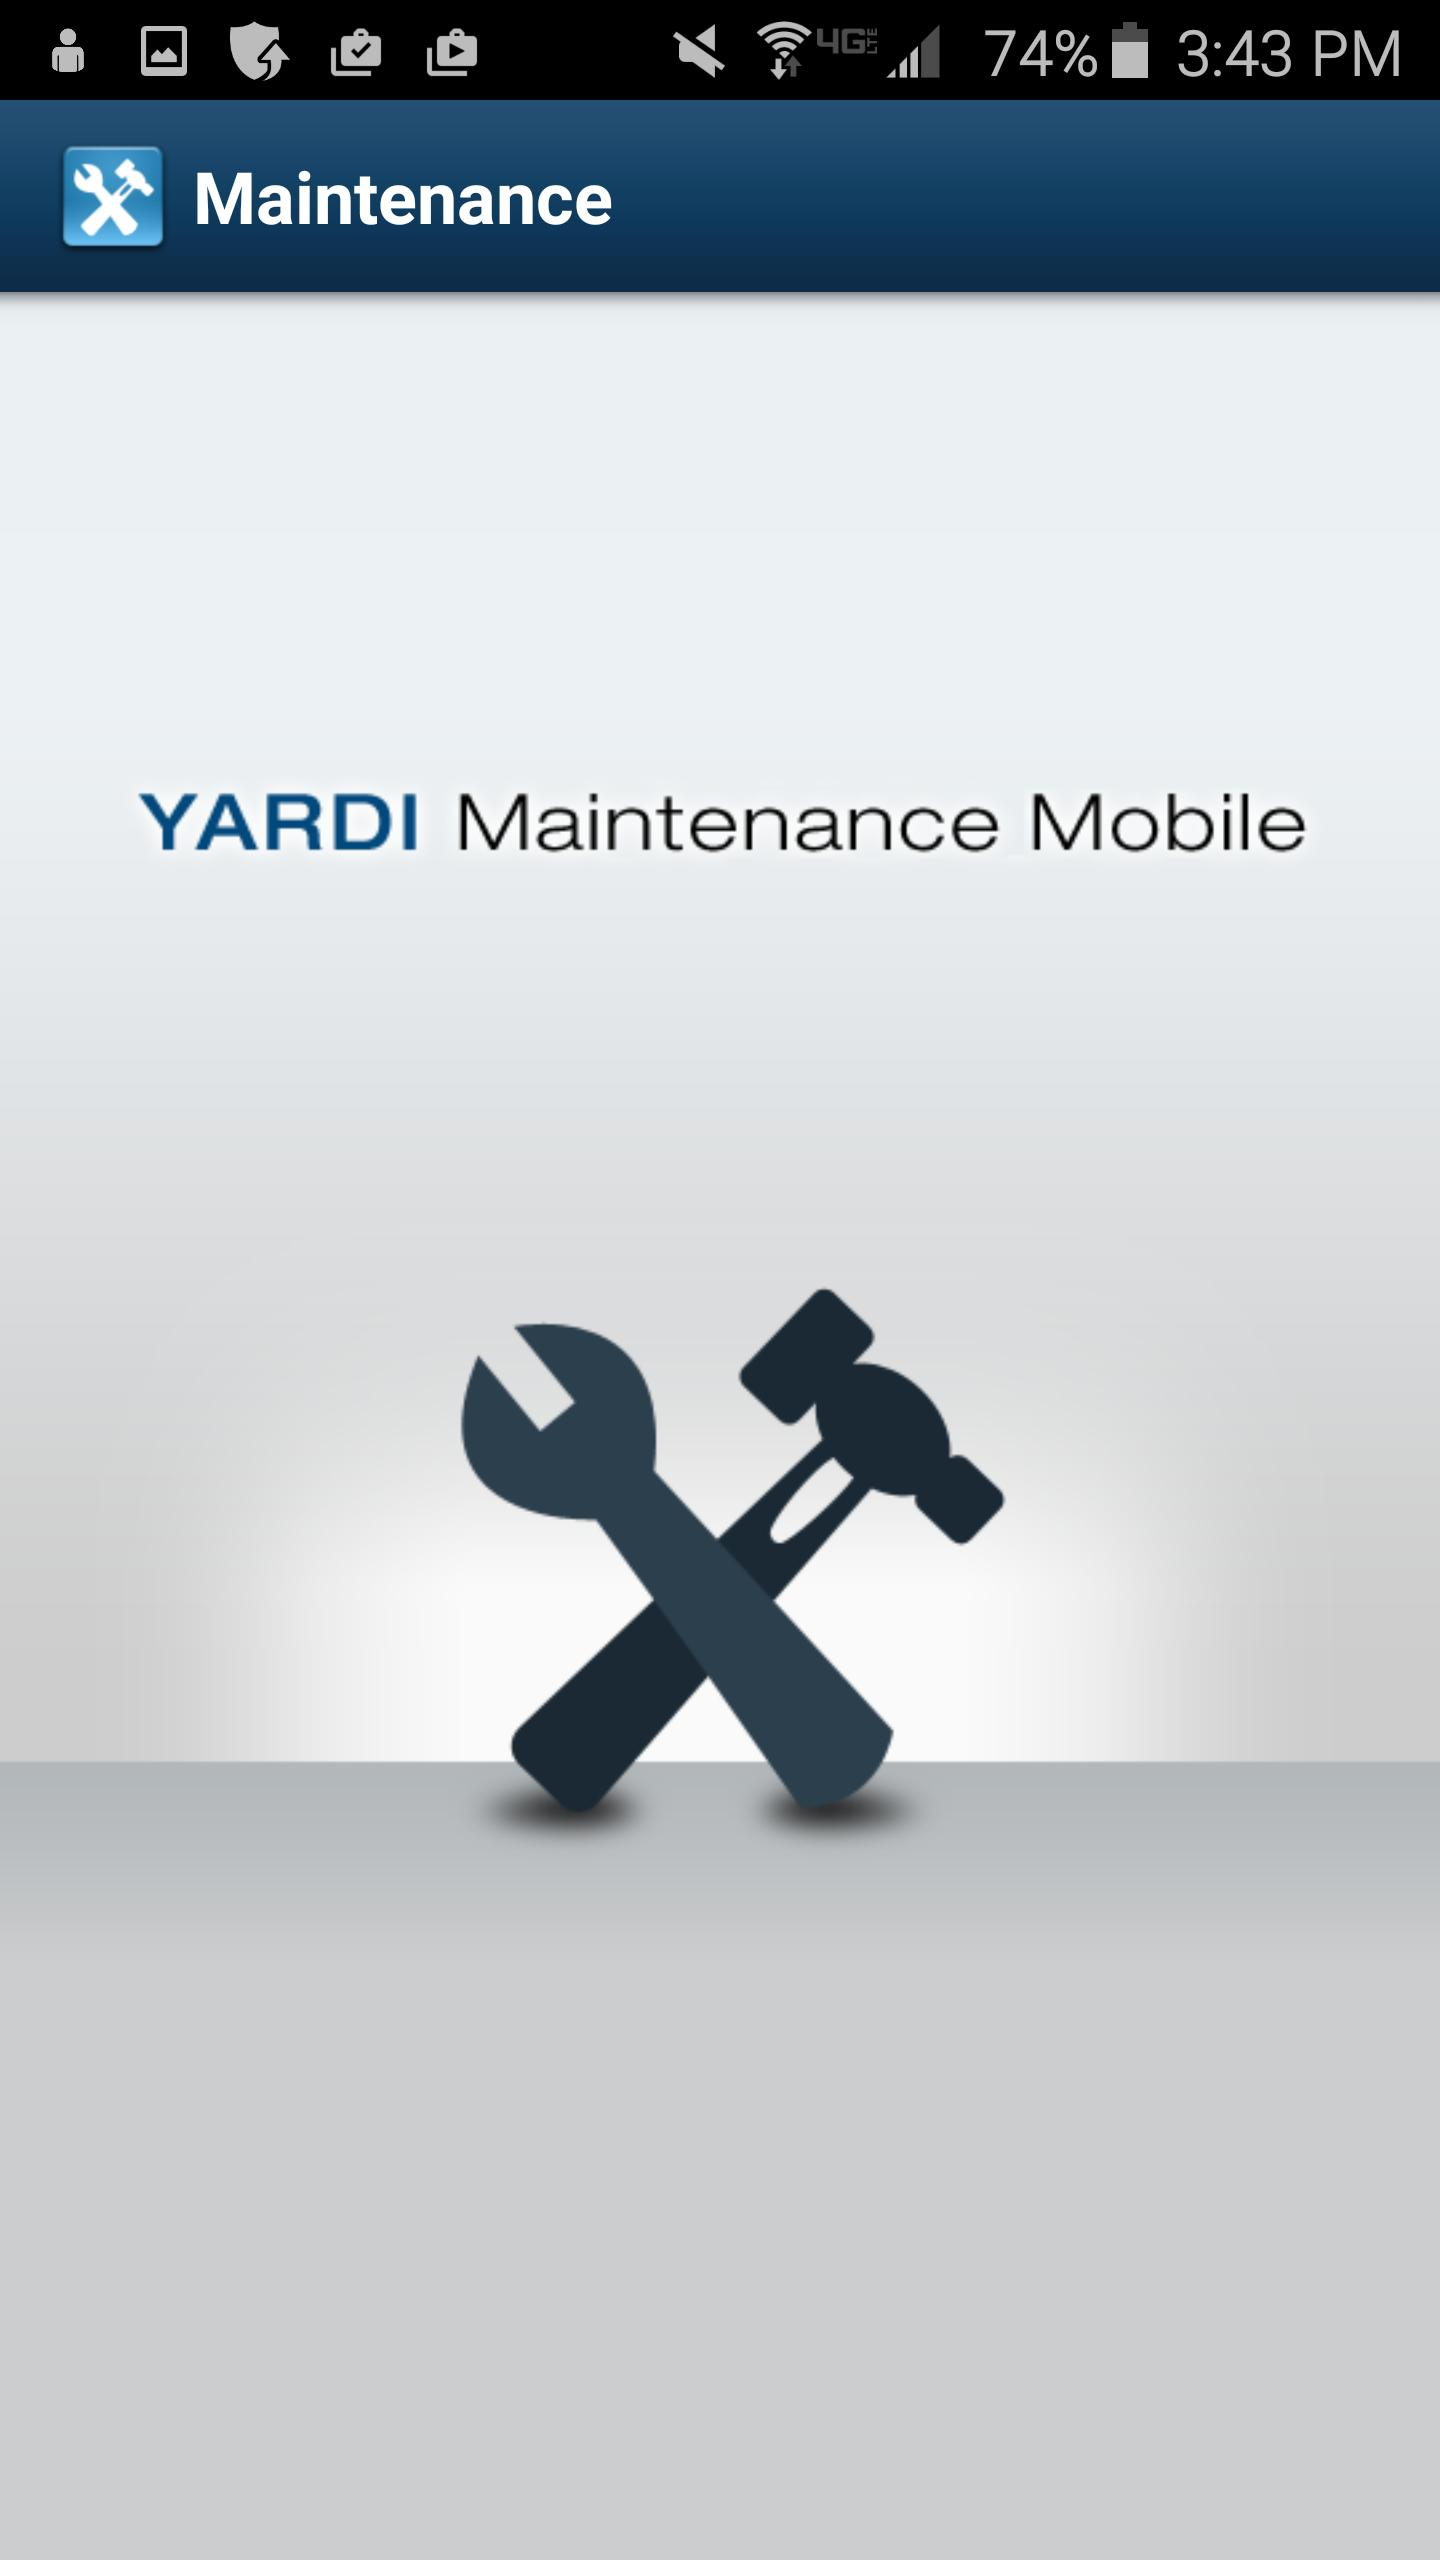 Yardi Maintenance Mobile for Android - APK Download